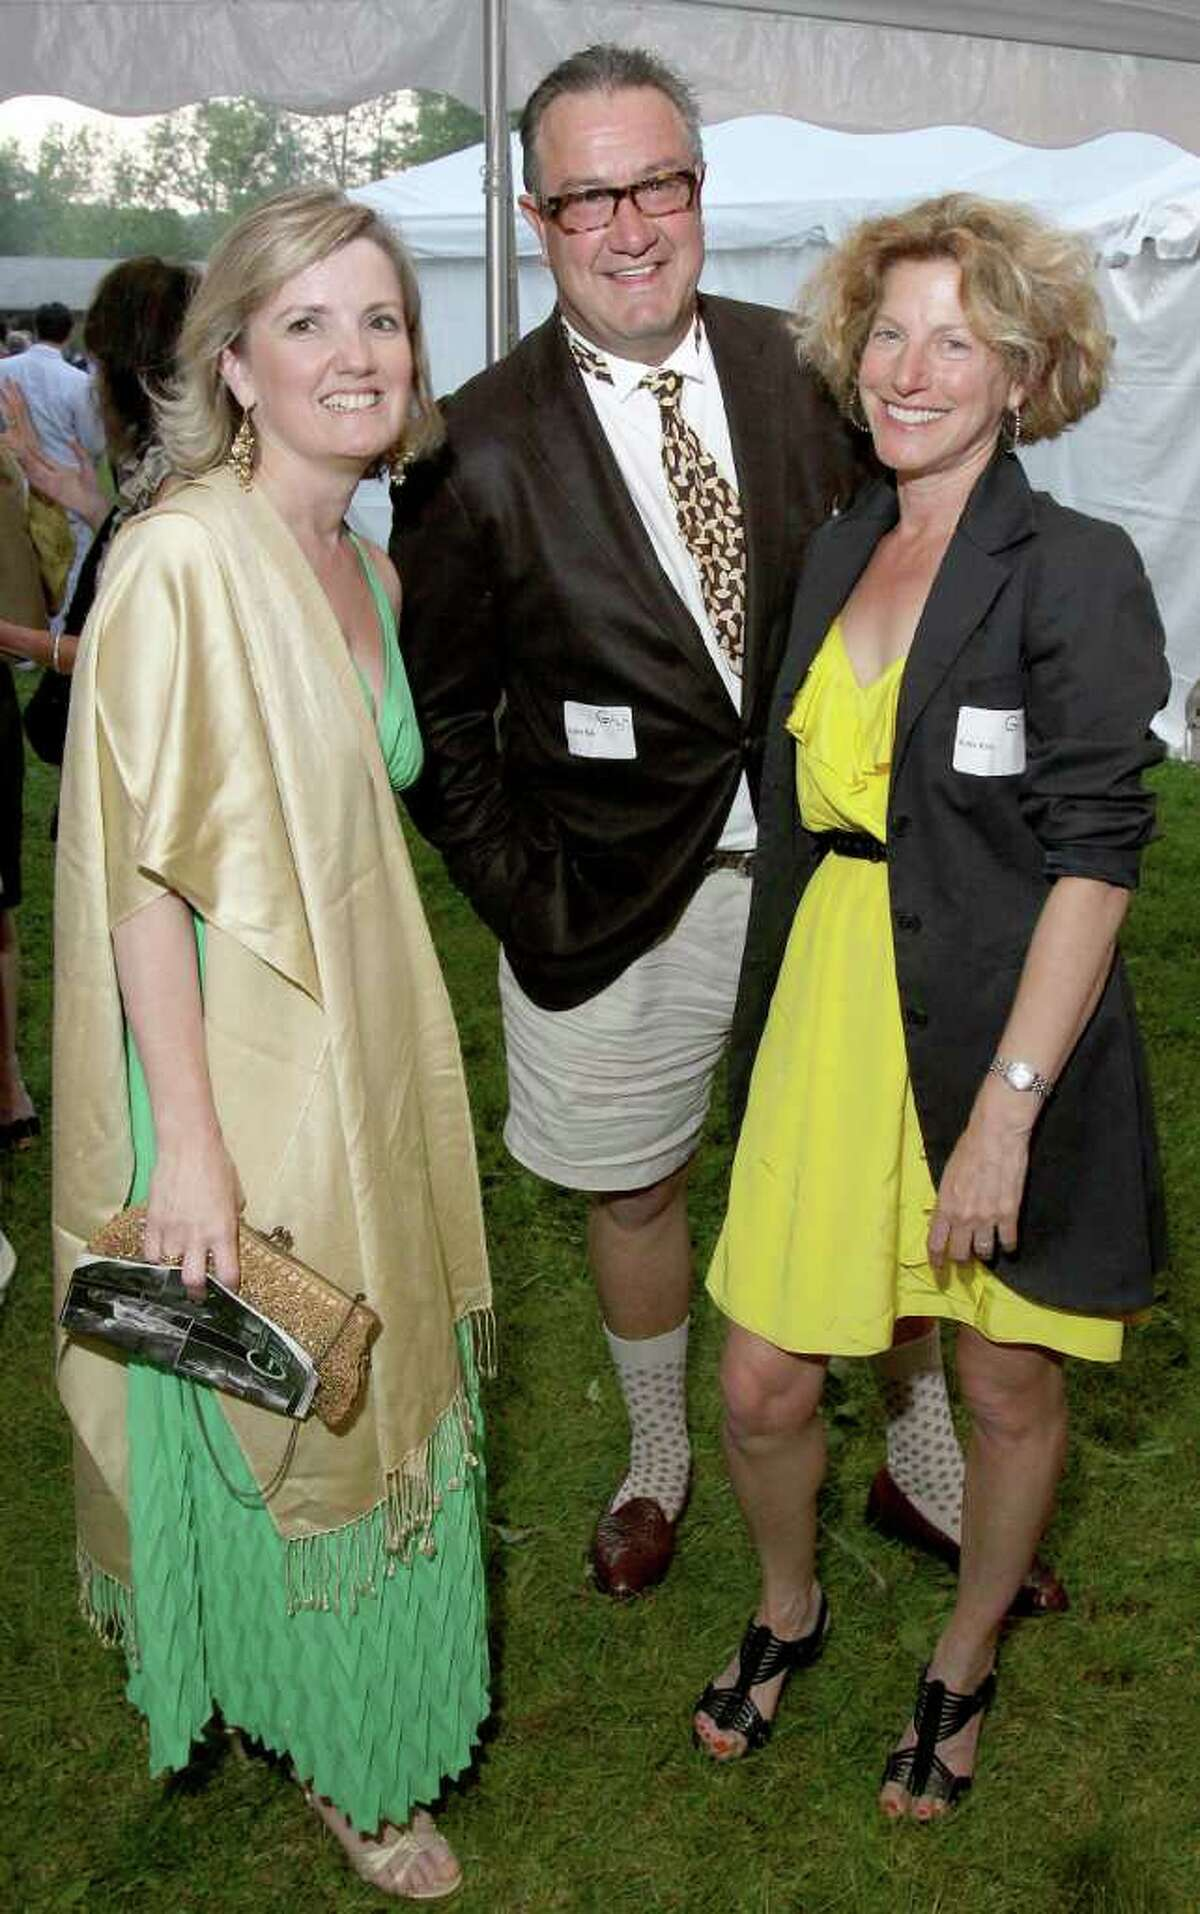 From left, Olivia Parton, Colter Rule and Katy Keller during the Jacob's Pillow 2011 Season Opening Gala. (Photo by Joe Putrock/Special to the Times Union)